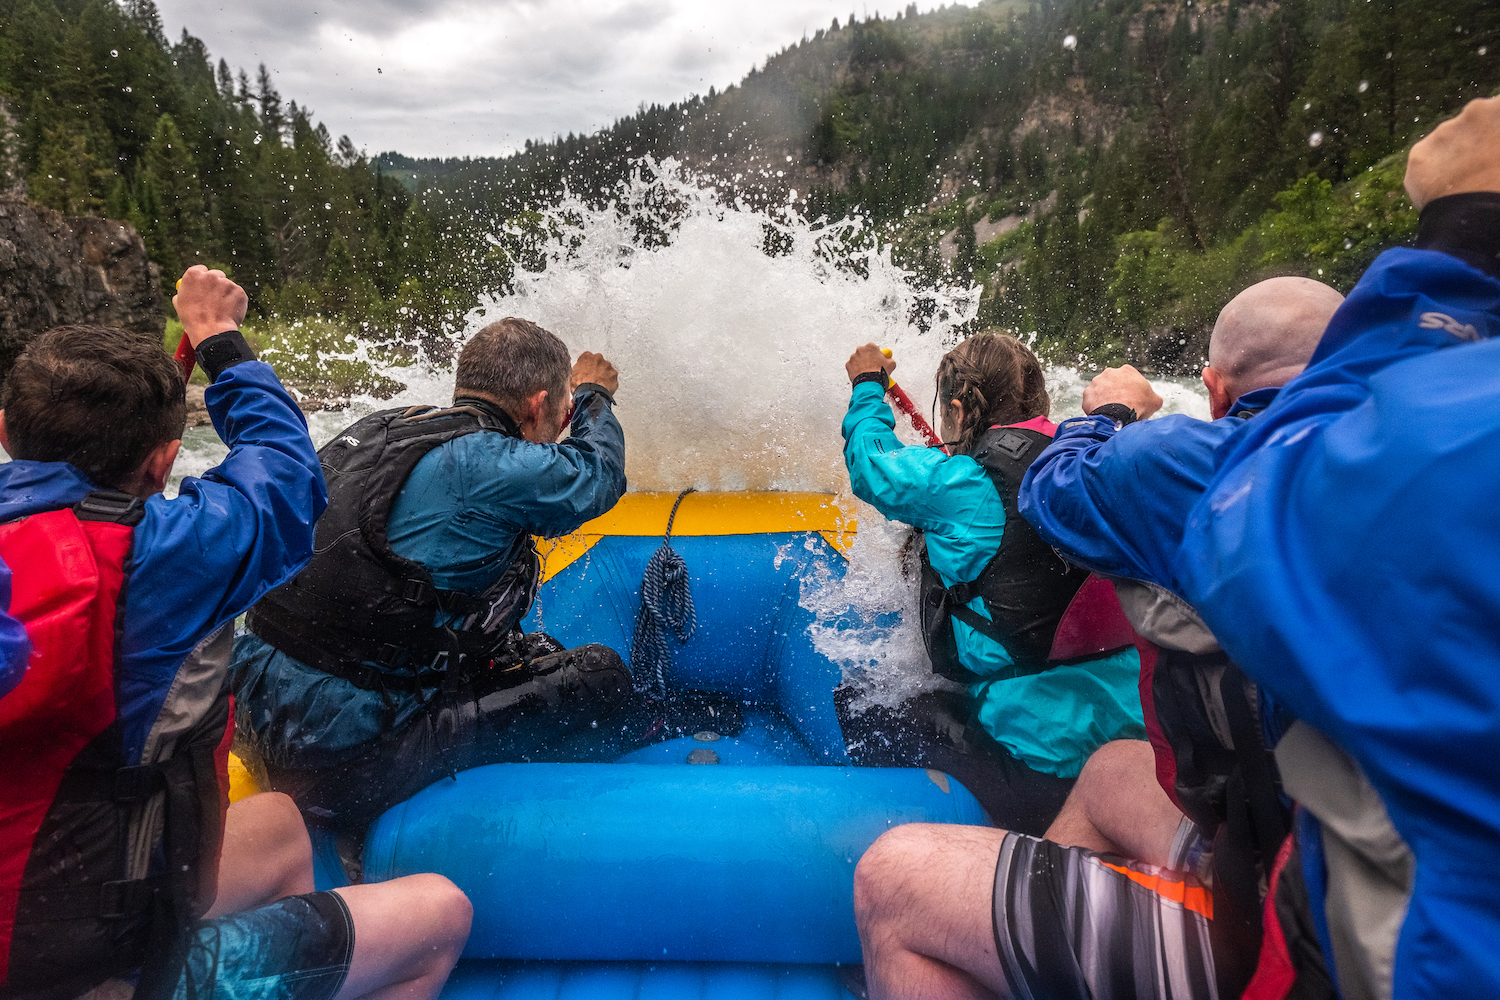 a blue raft with a bunch of paddlers face an oncoming surge of whitewater on the Snake River. Each person is seating and holding a paddle that is plunged into the water.